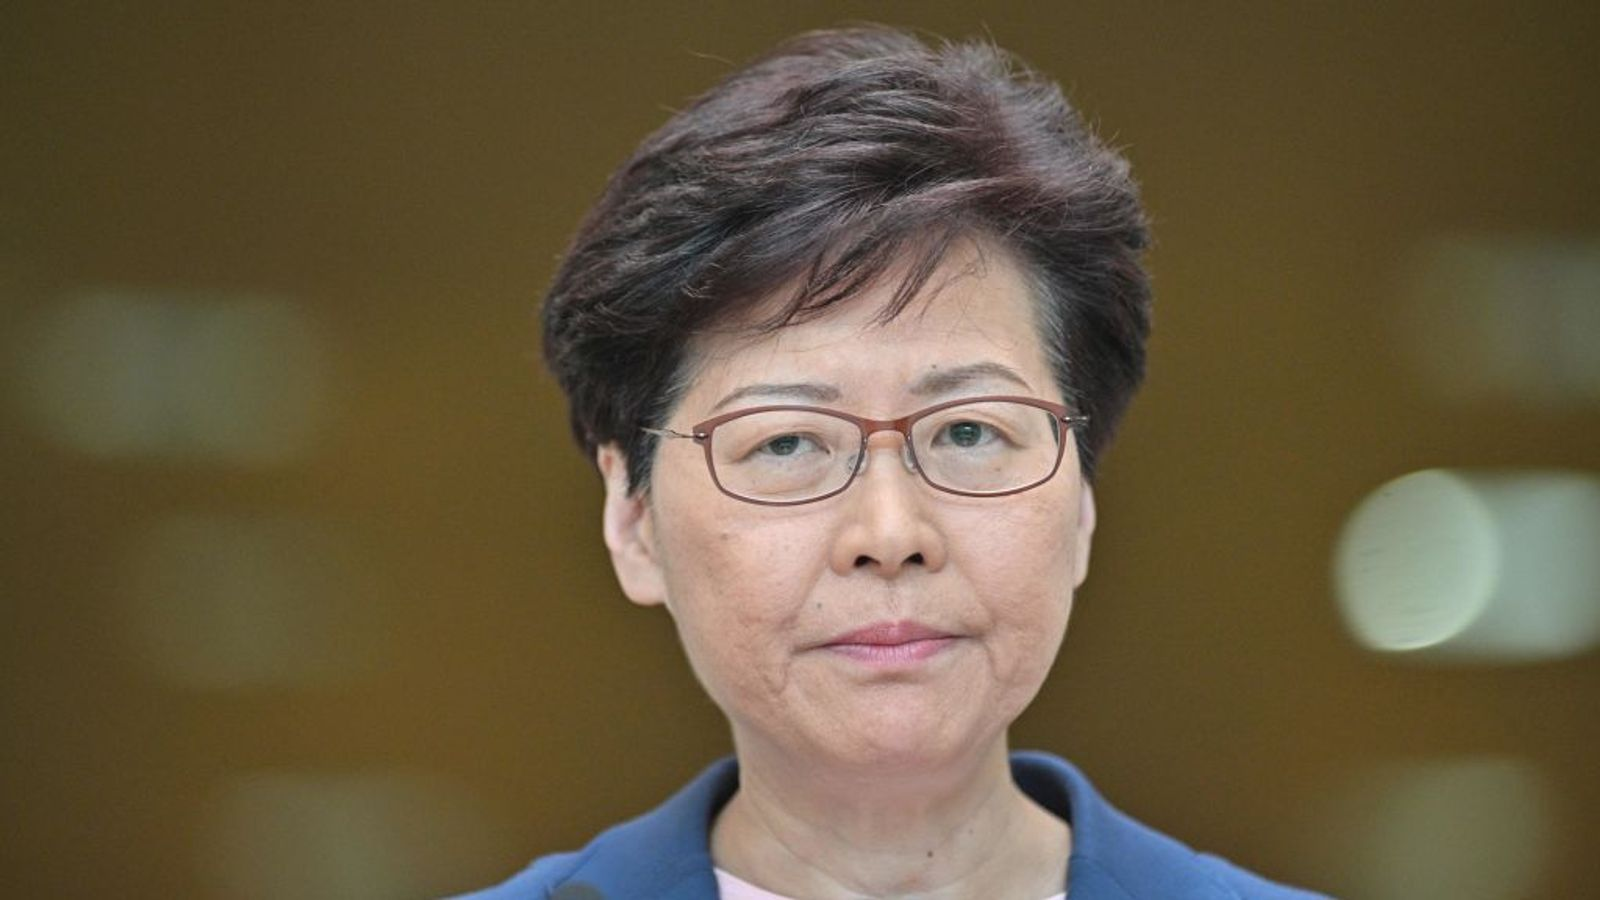 Hong Kong leader to withdraw controversial extradition bill